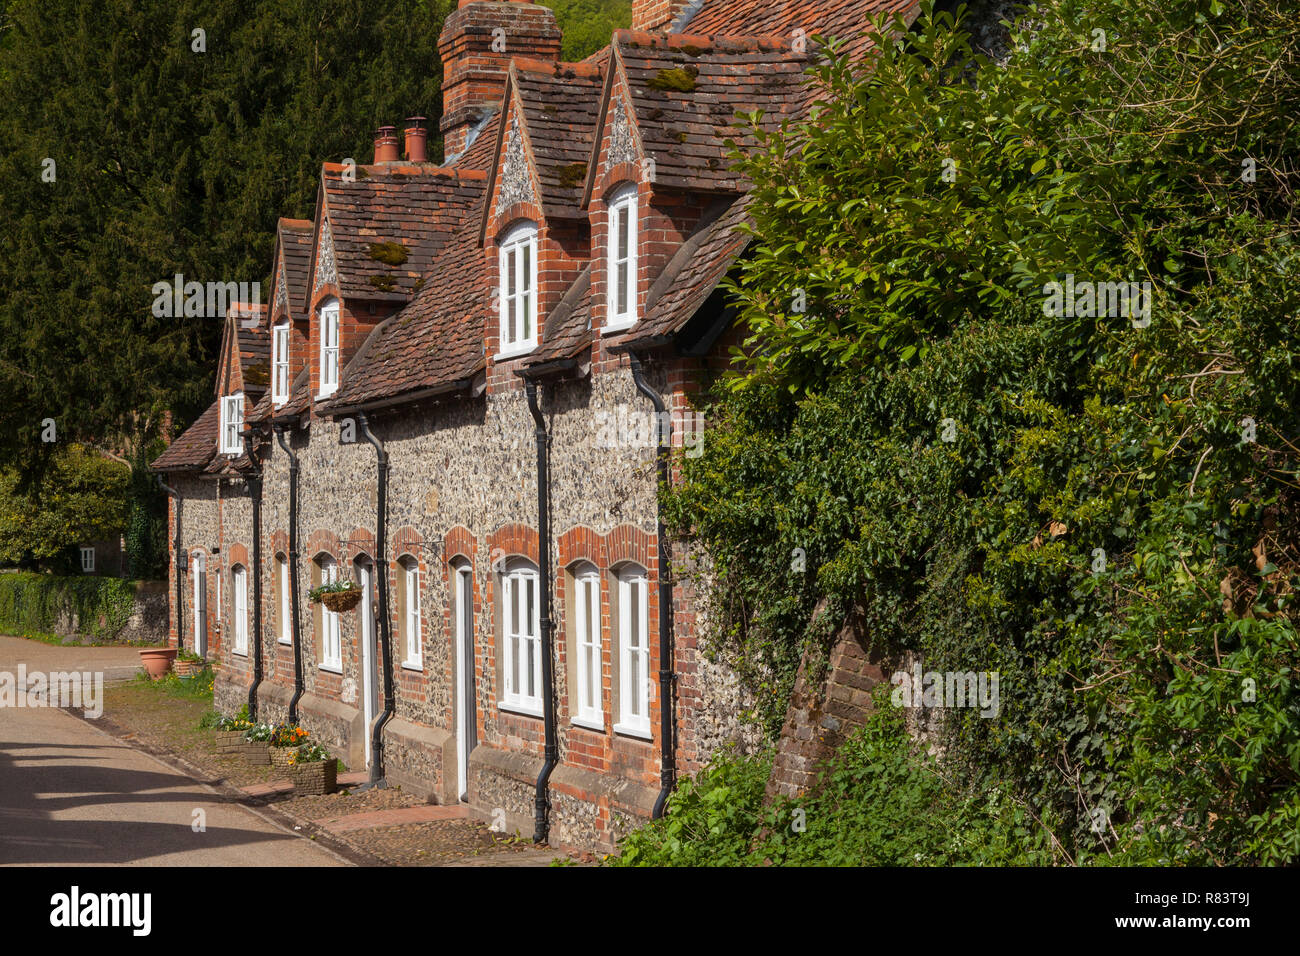 A row of traditional brick and flint cottages in the village of Hambleden, Buckinghamshire Stock Photo